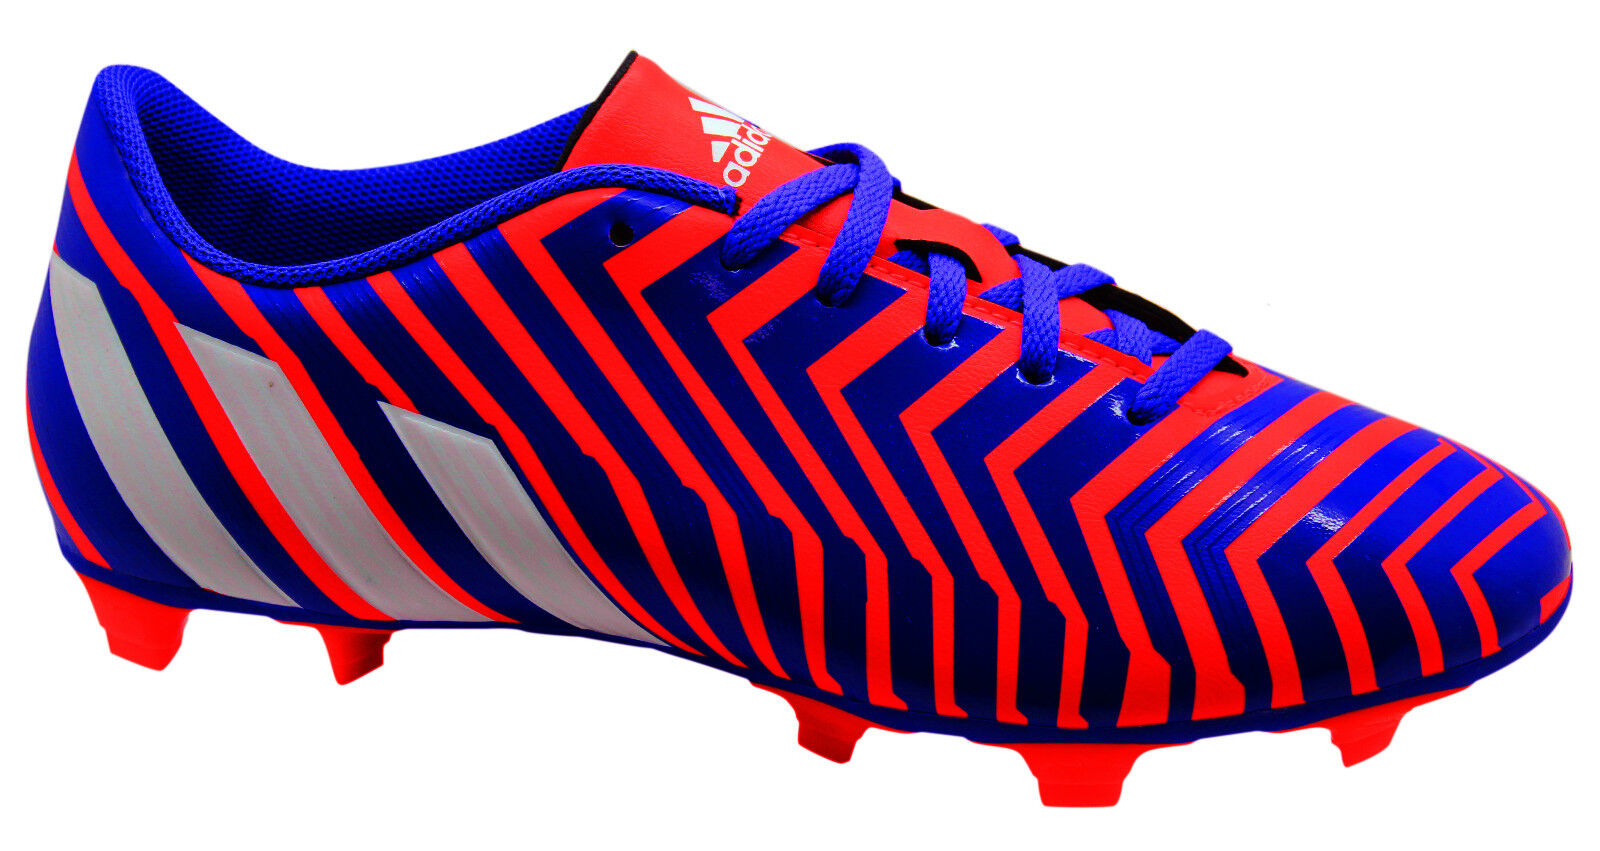 hot sale online 6f74f 79782 Details about Adidas Predito Instinct FG Firm Ground Mens Football Sports  Boots B35492 U66